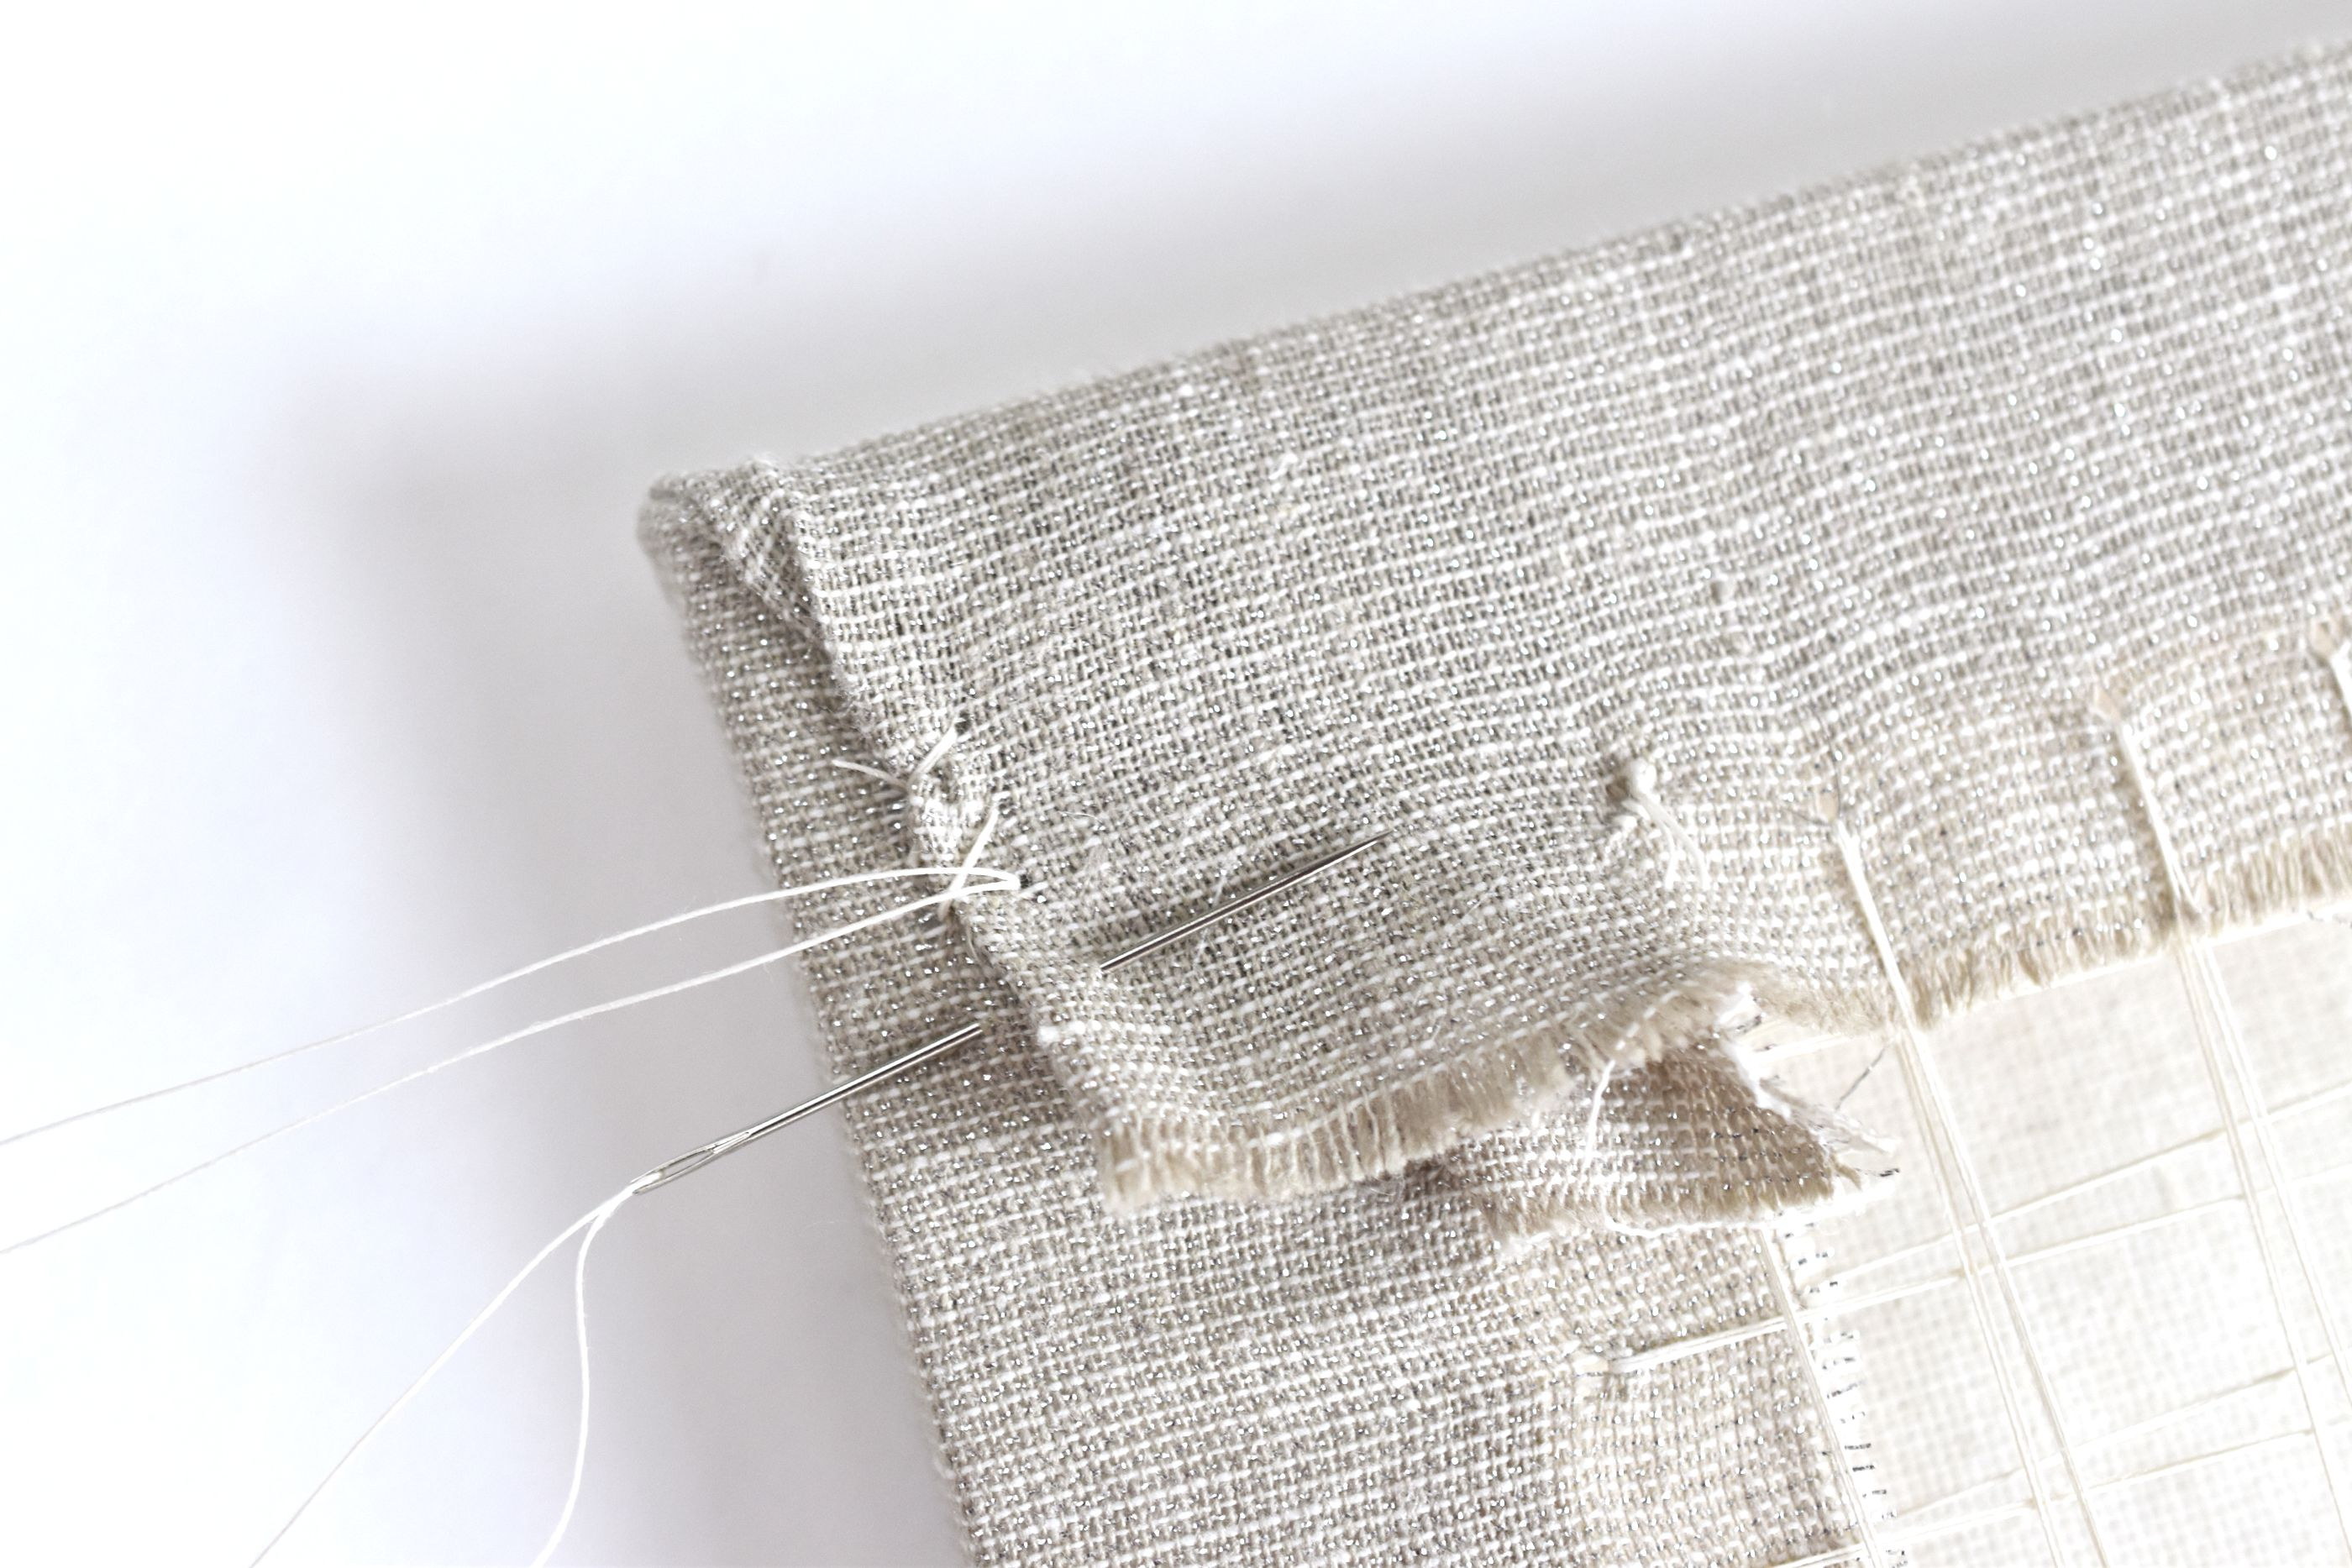 How to Display Embroidery on a Stretched Canvas